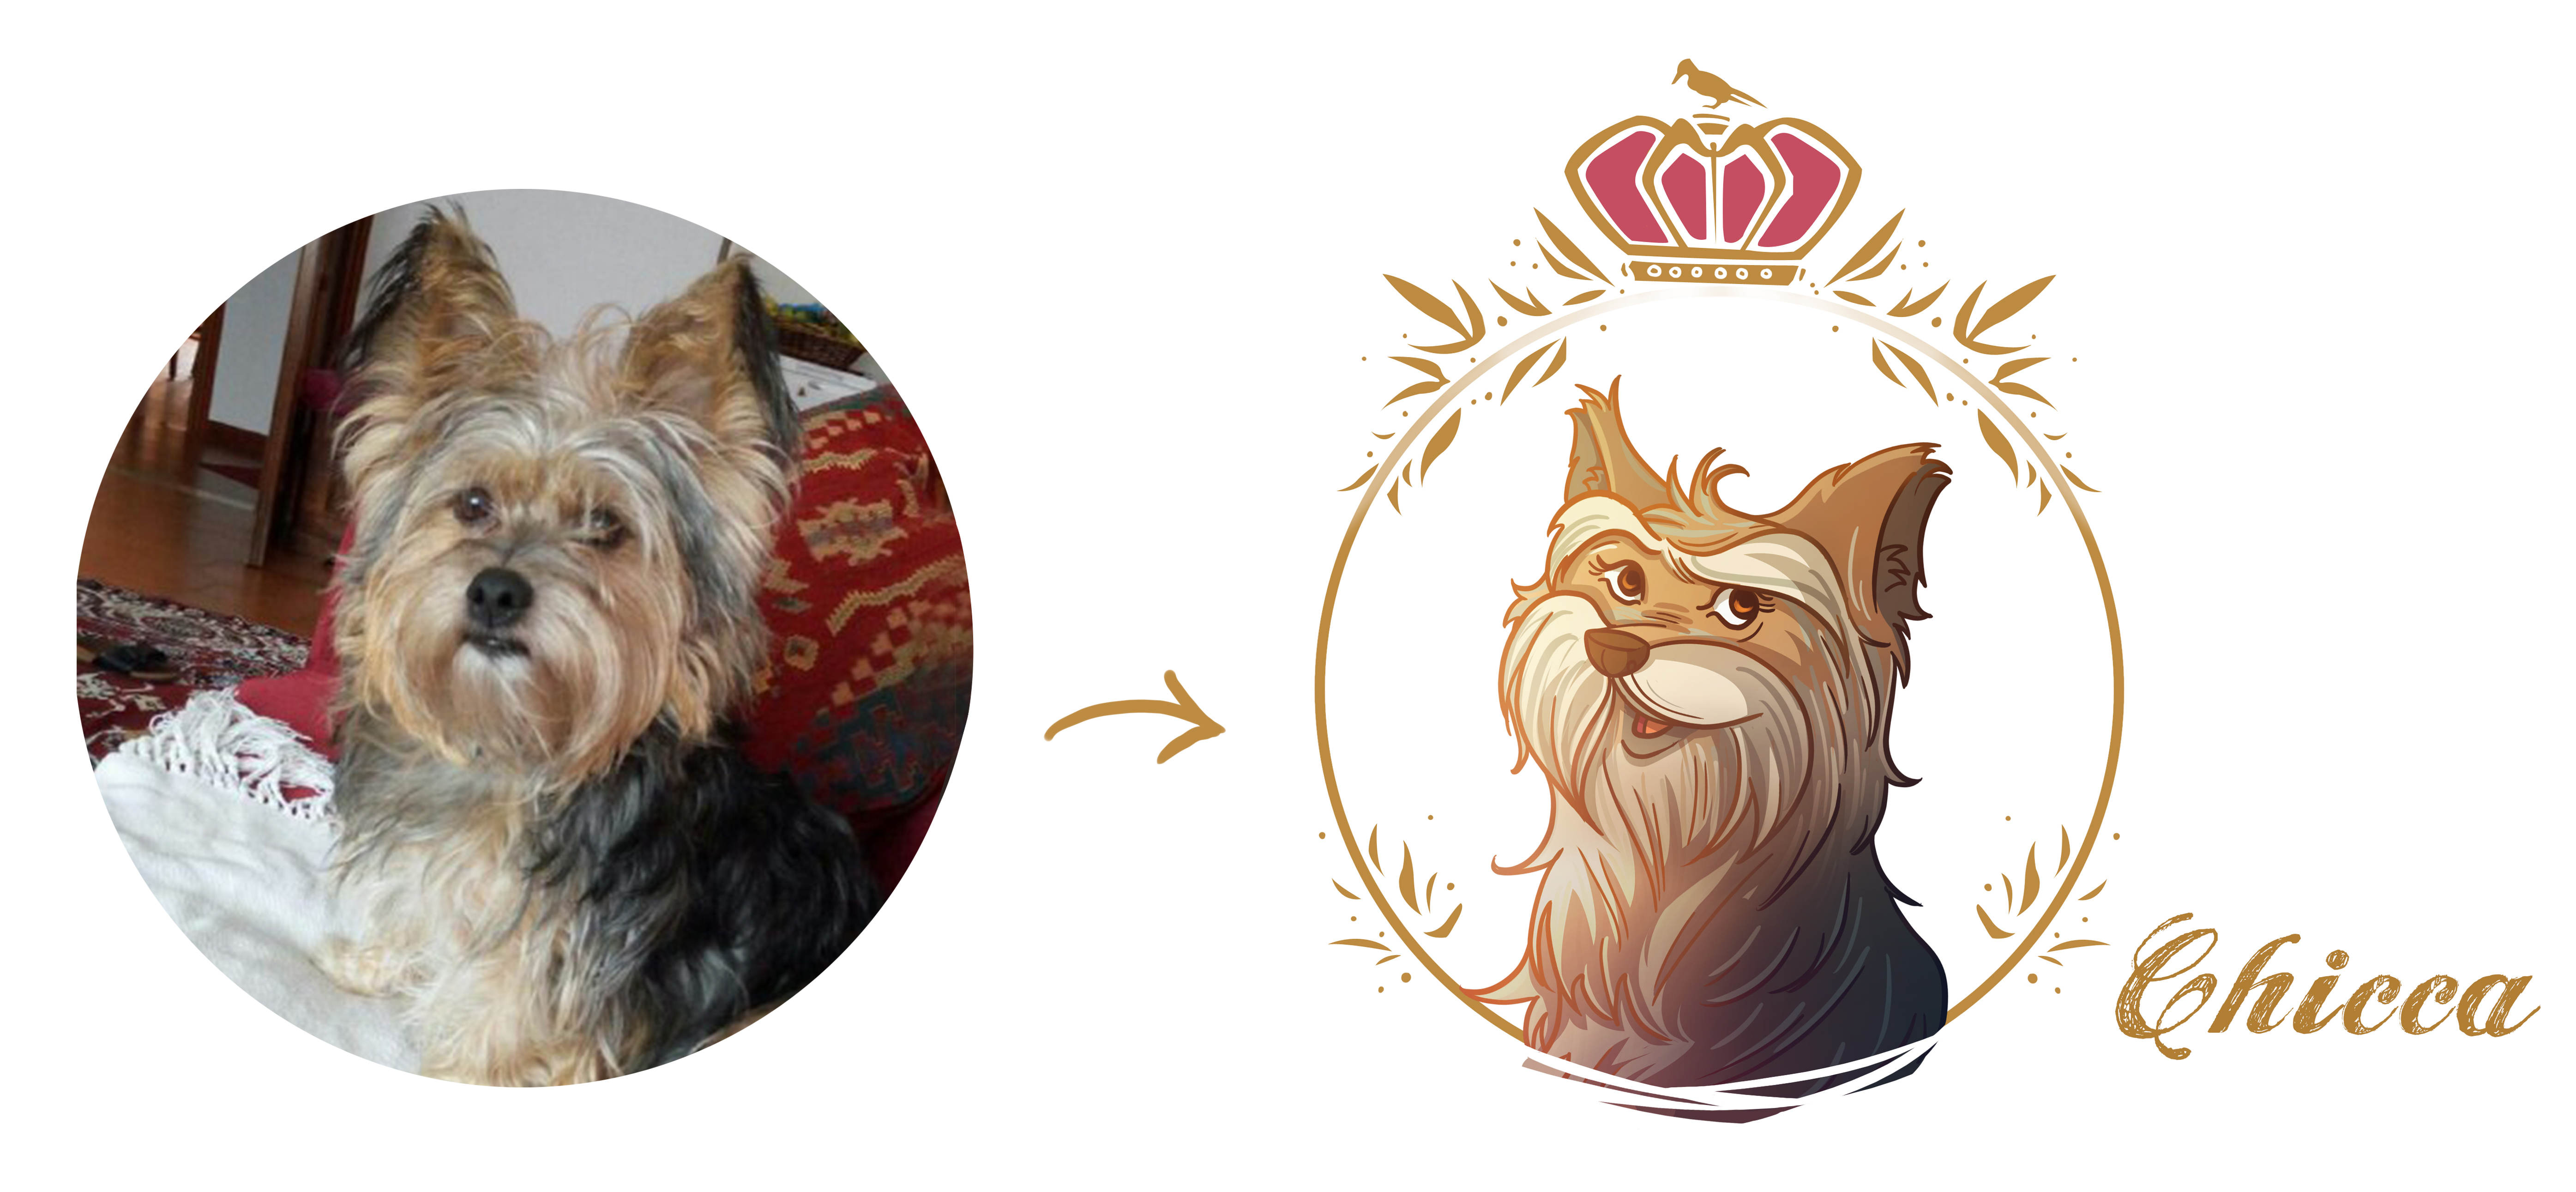 Draw Your Pet In My Illustration Style